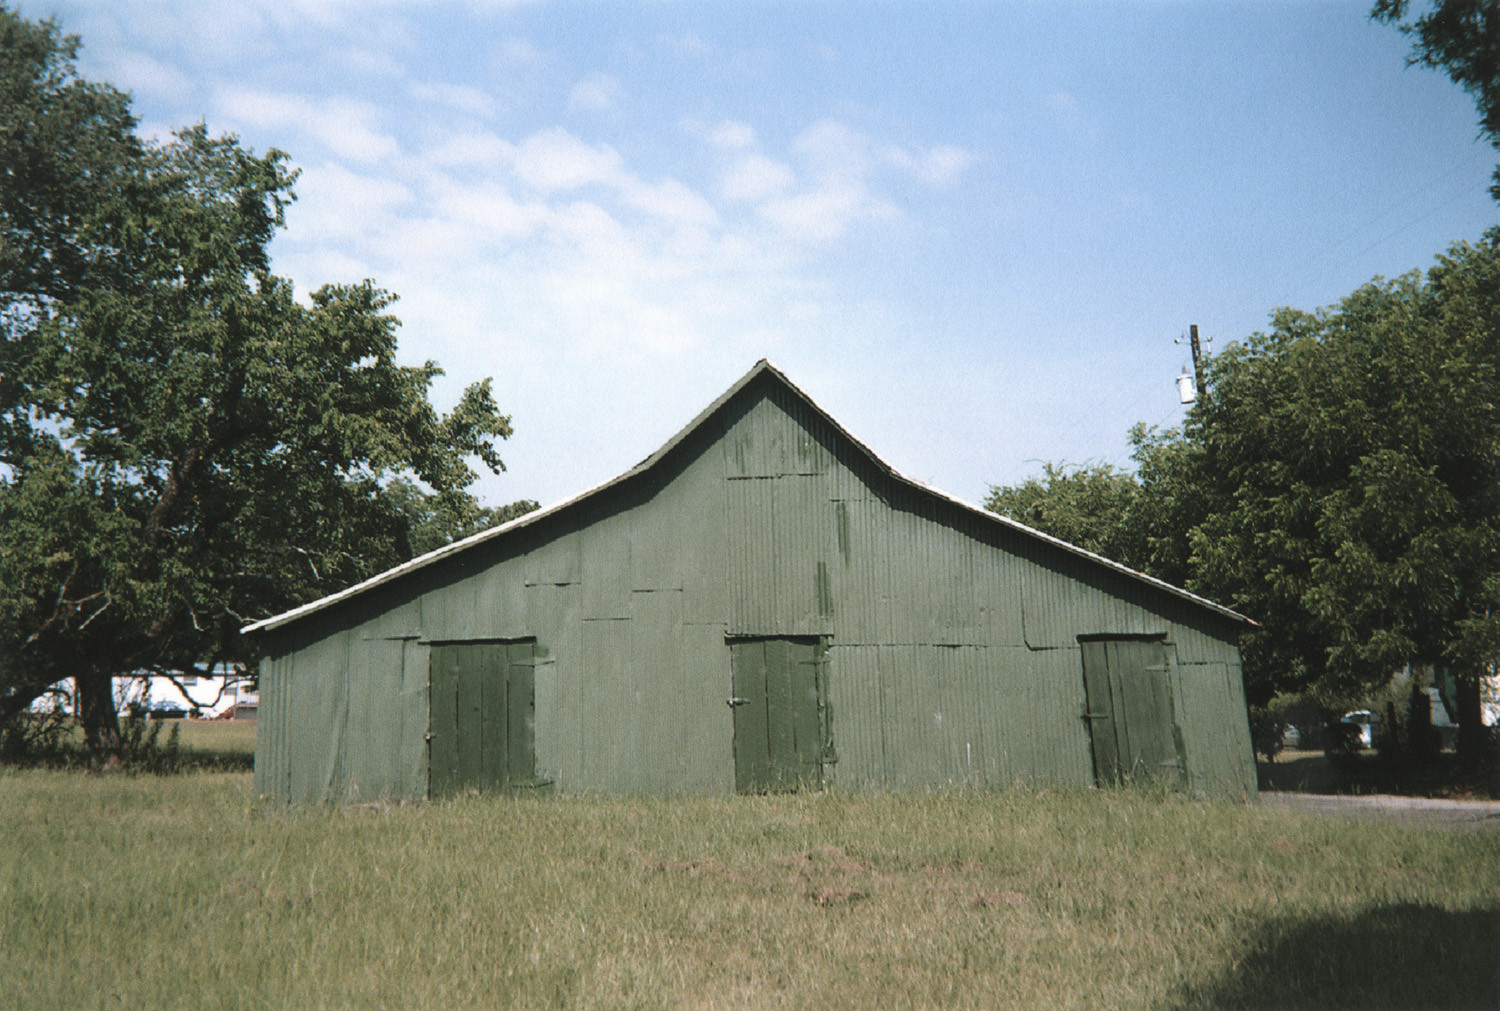 William Christenberry, Green Warehouse, Newbern, Alabama, 2000